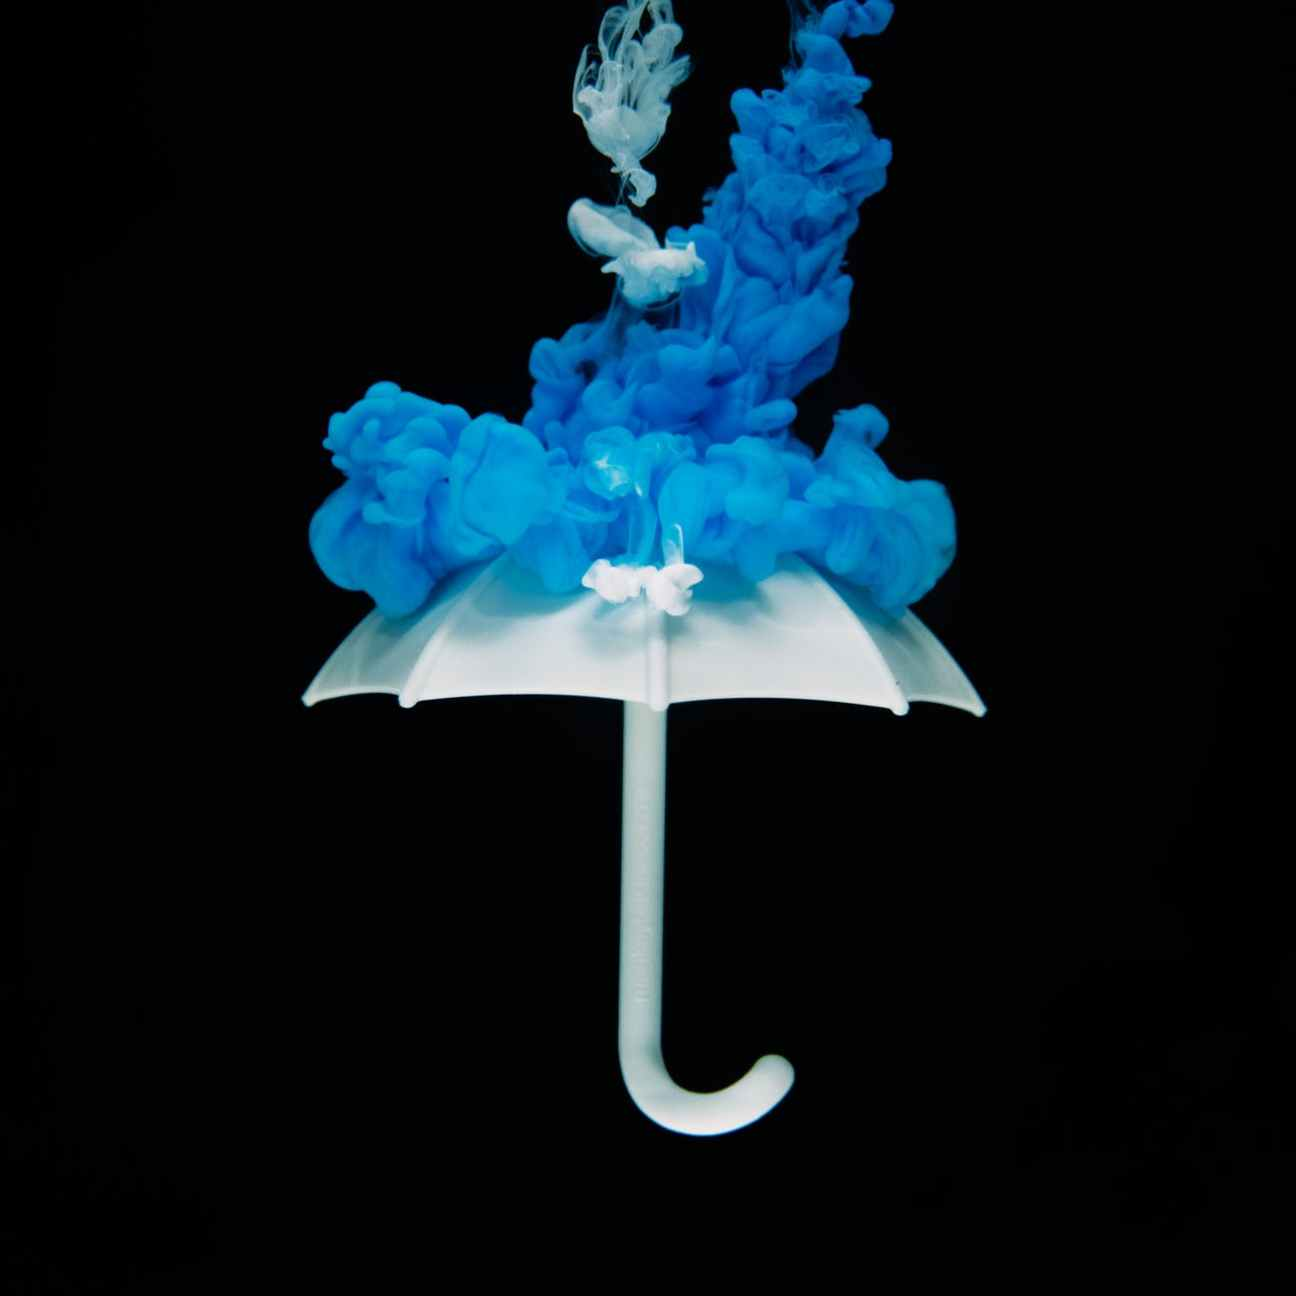 photo of white umbrella with blue smoke illustration